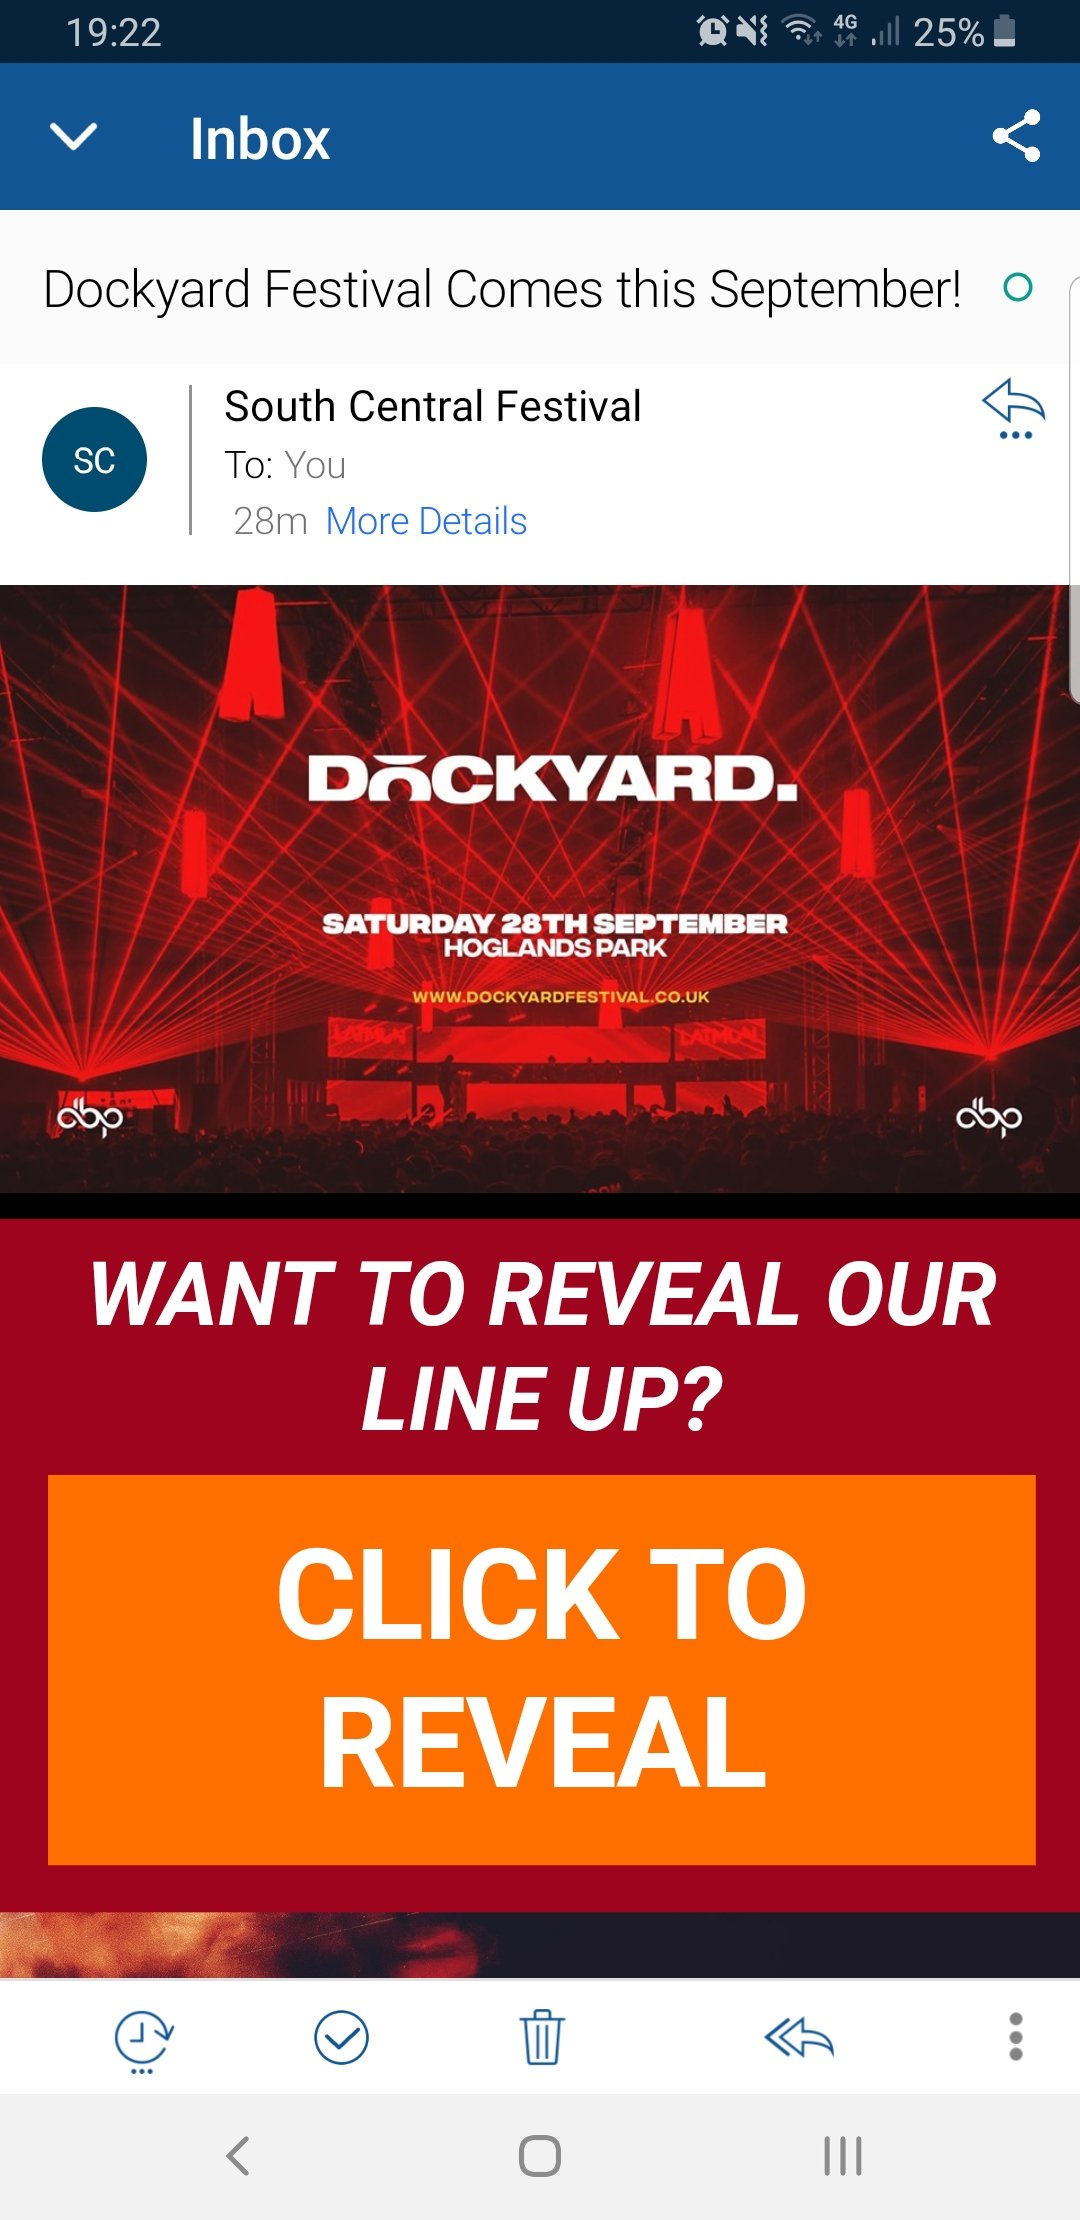 New UK Dockyard Festival announced, in a really interesting way... 1